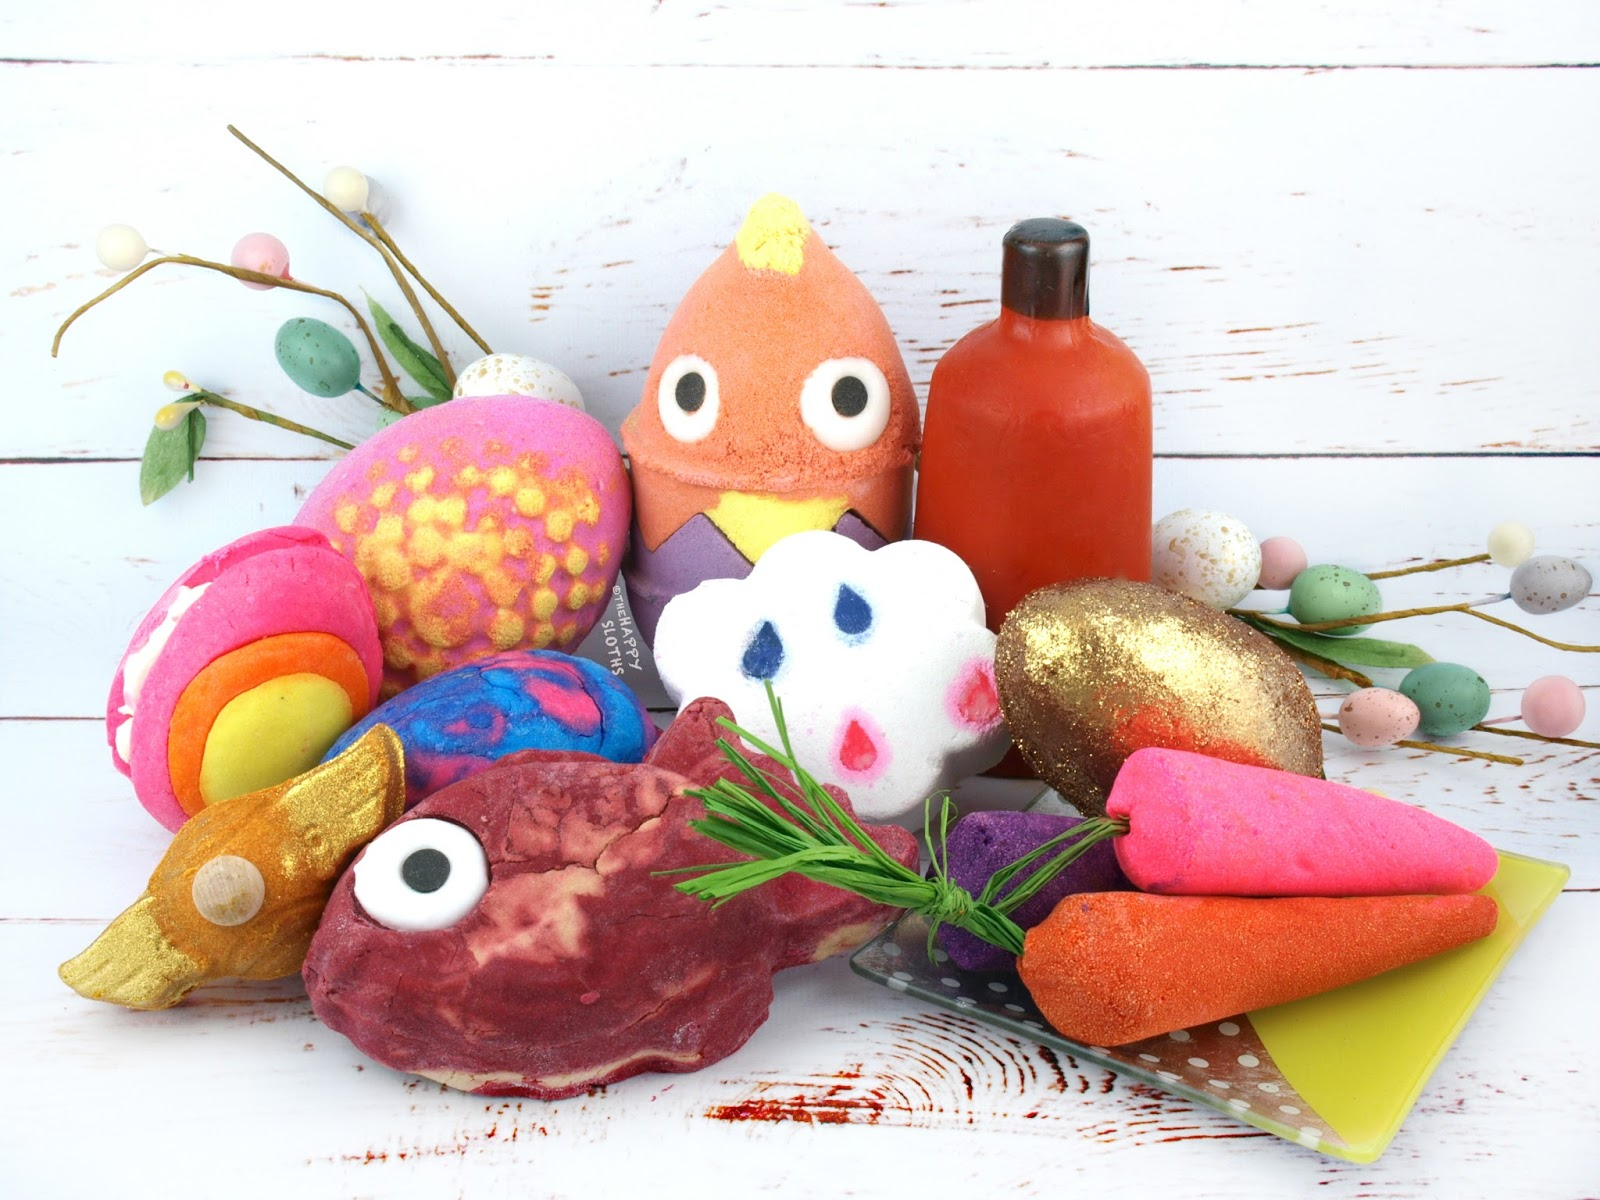 Lush | Easter 2018 Collection: Review